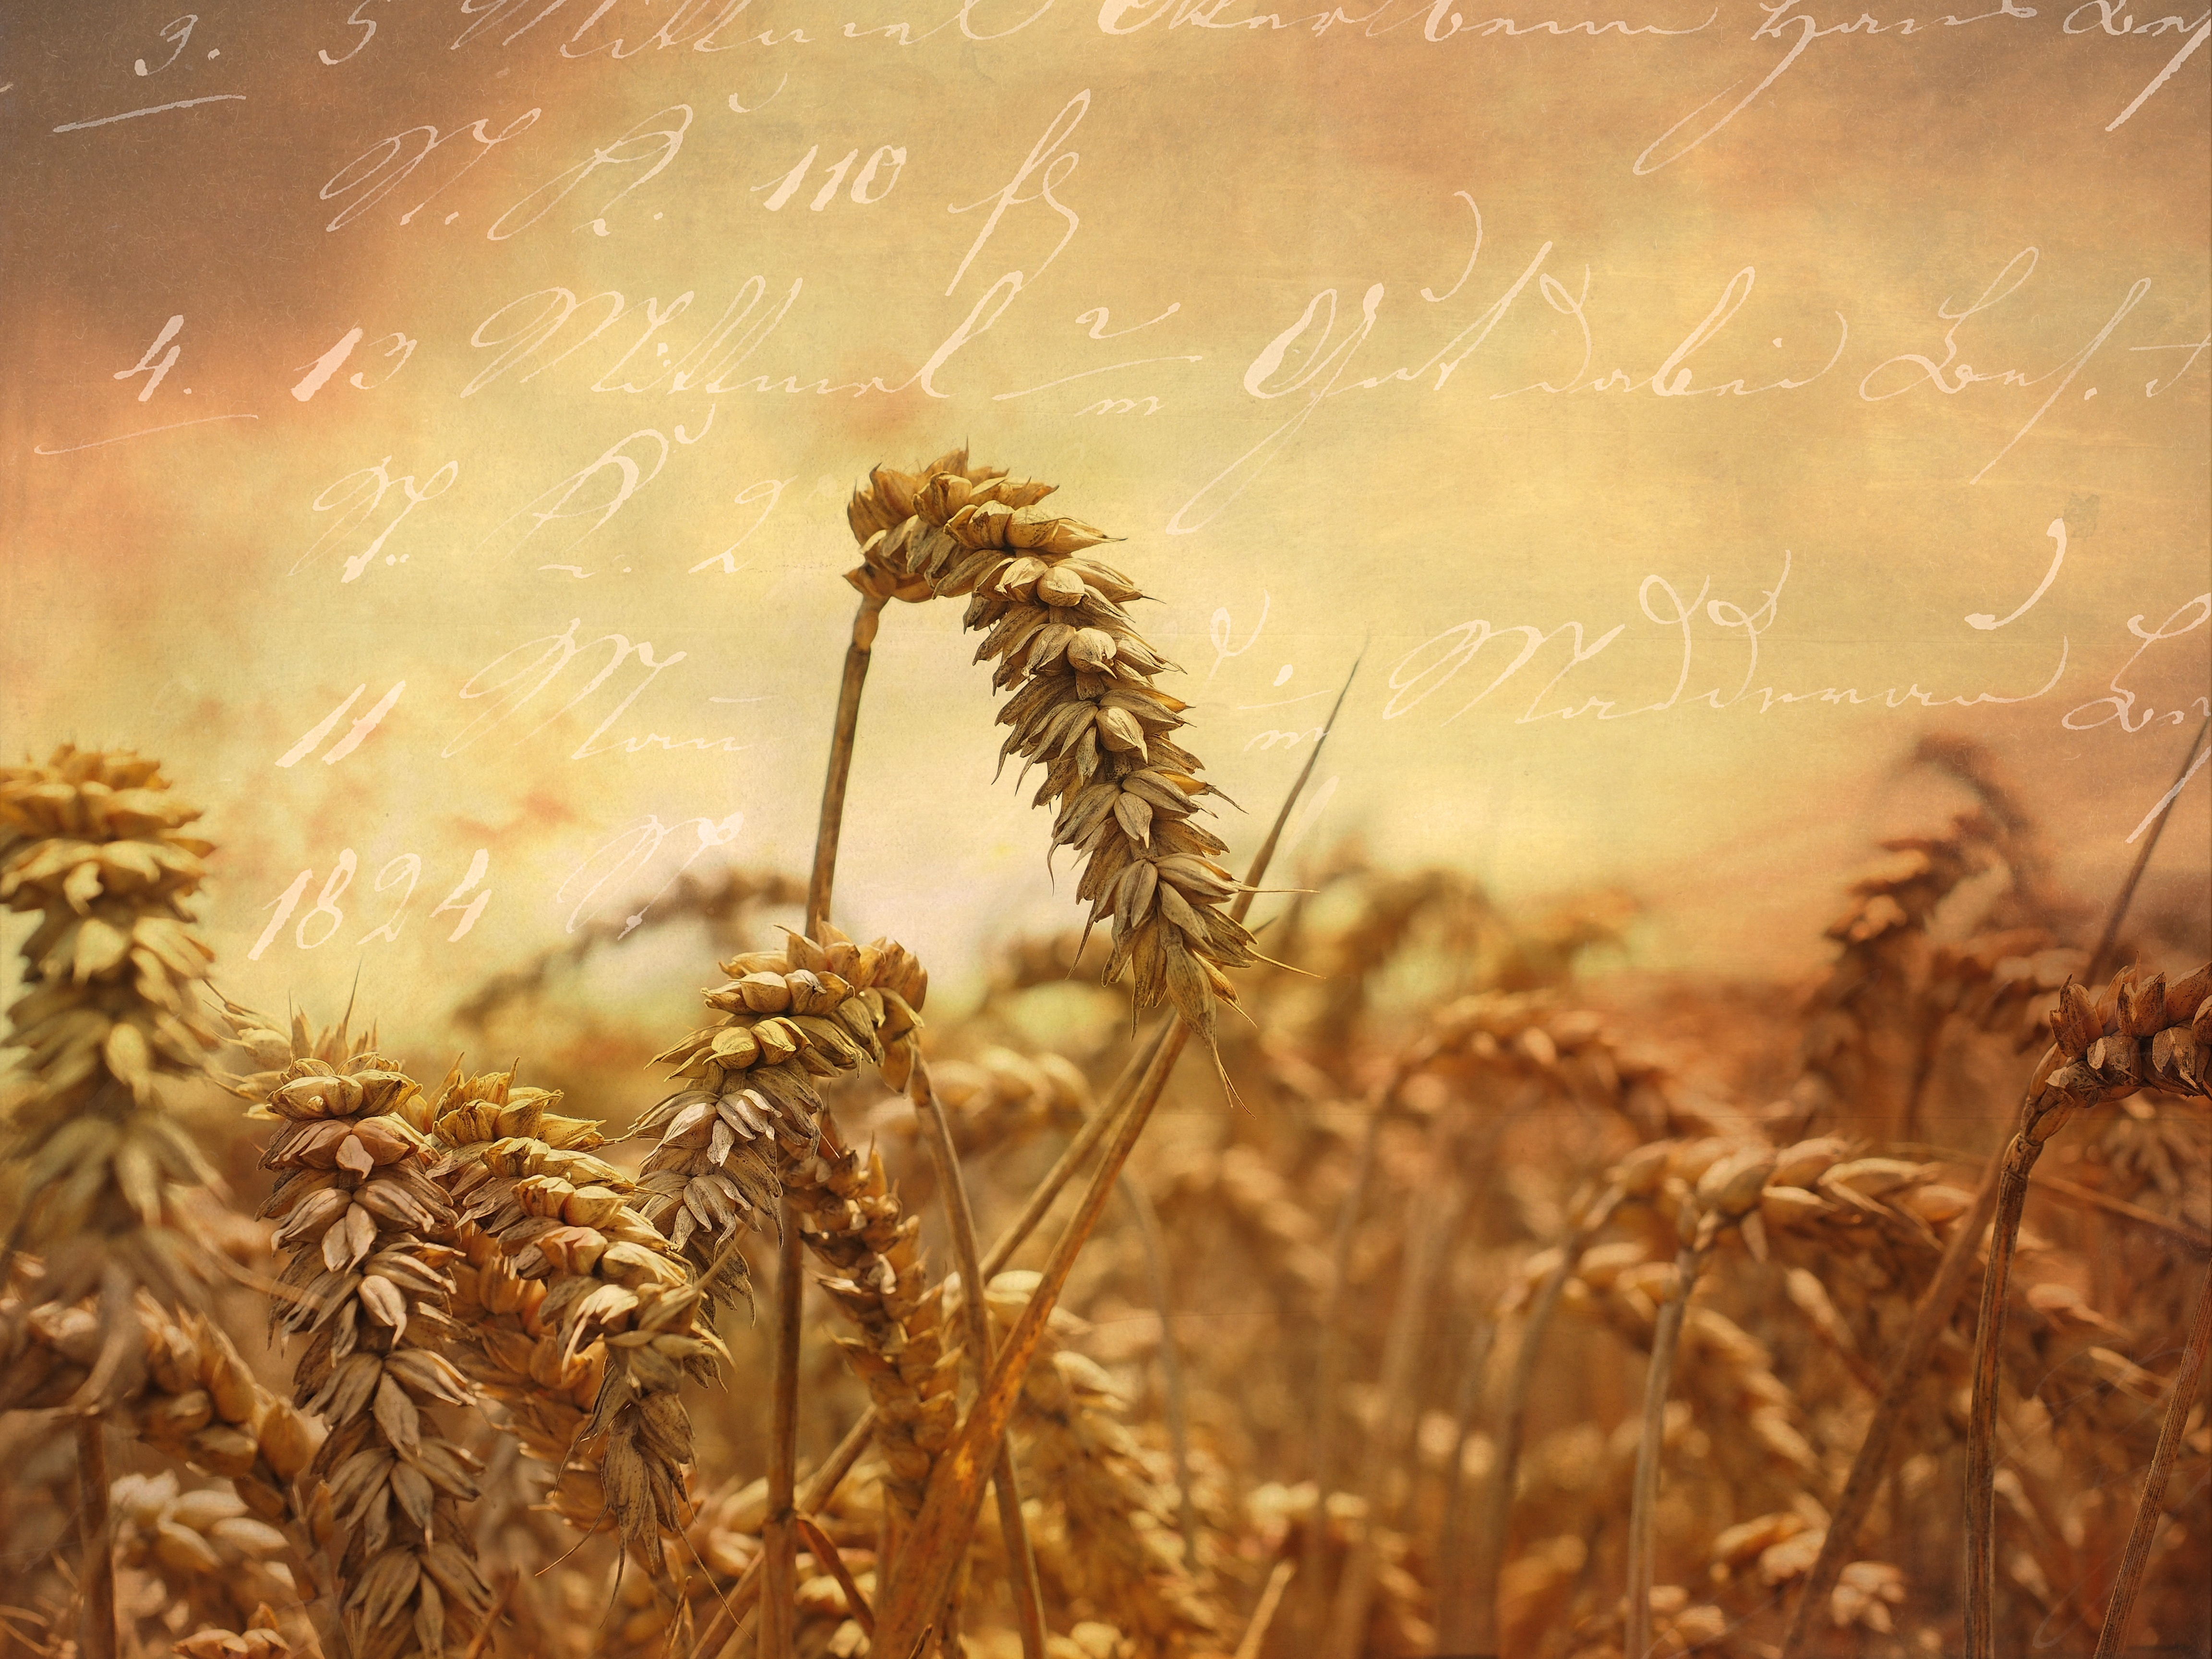 Crops, Brown, Field, Nature, Plants, HQ Photo